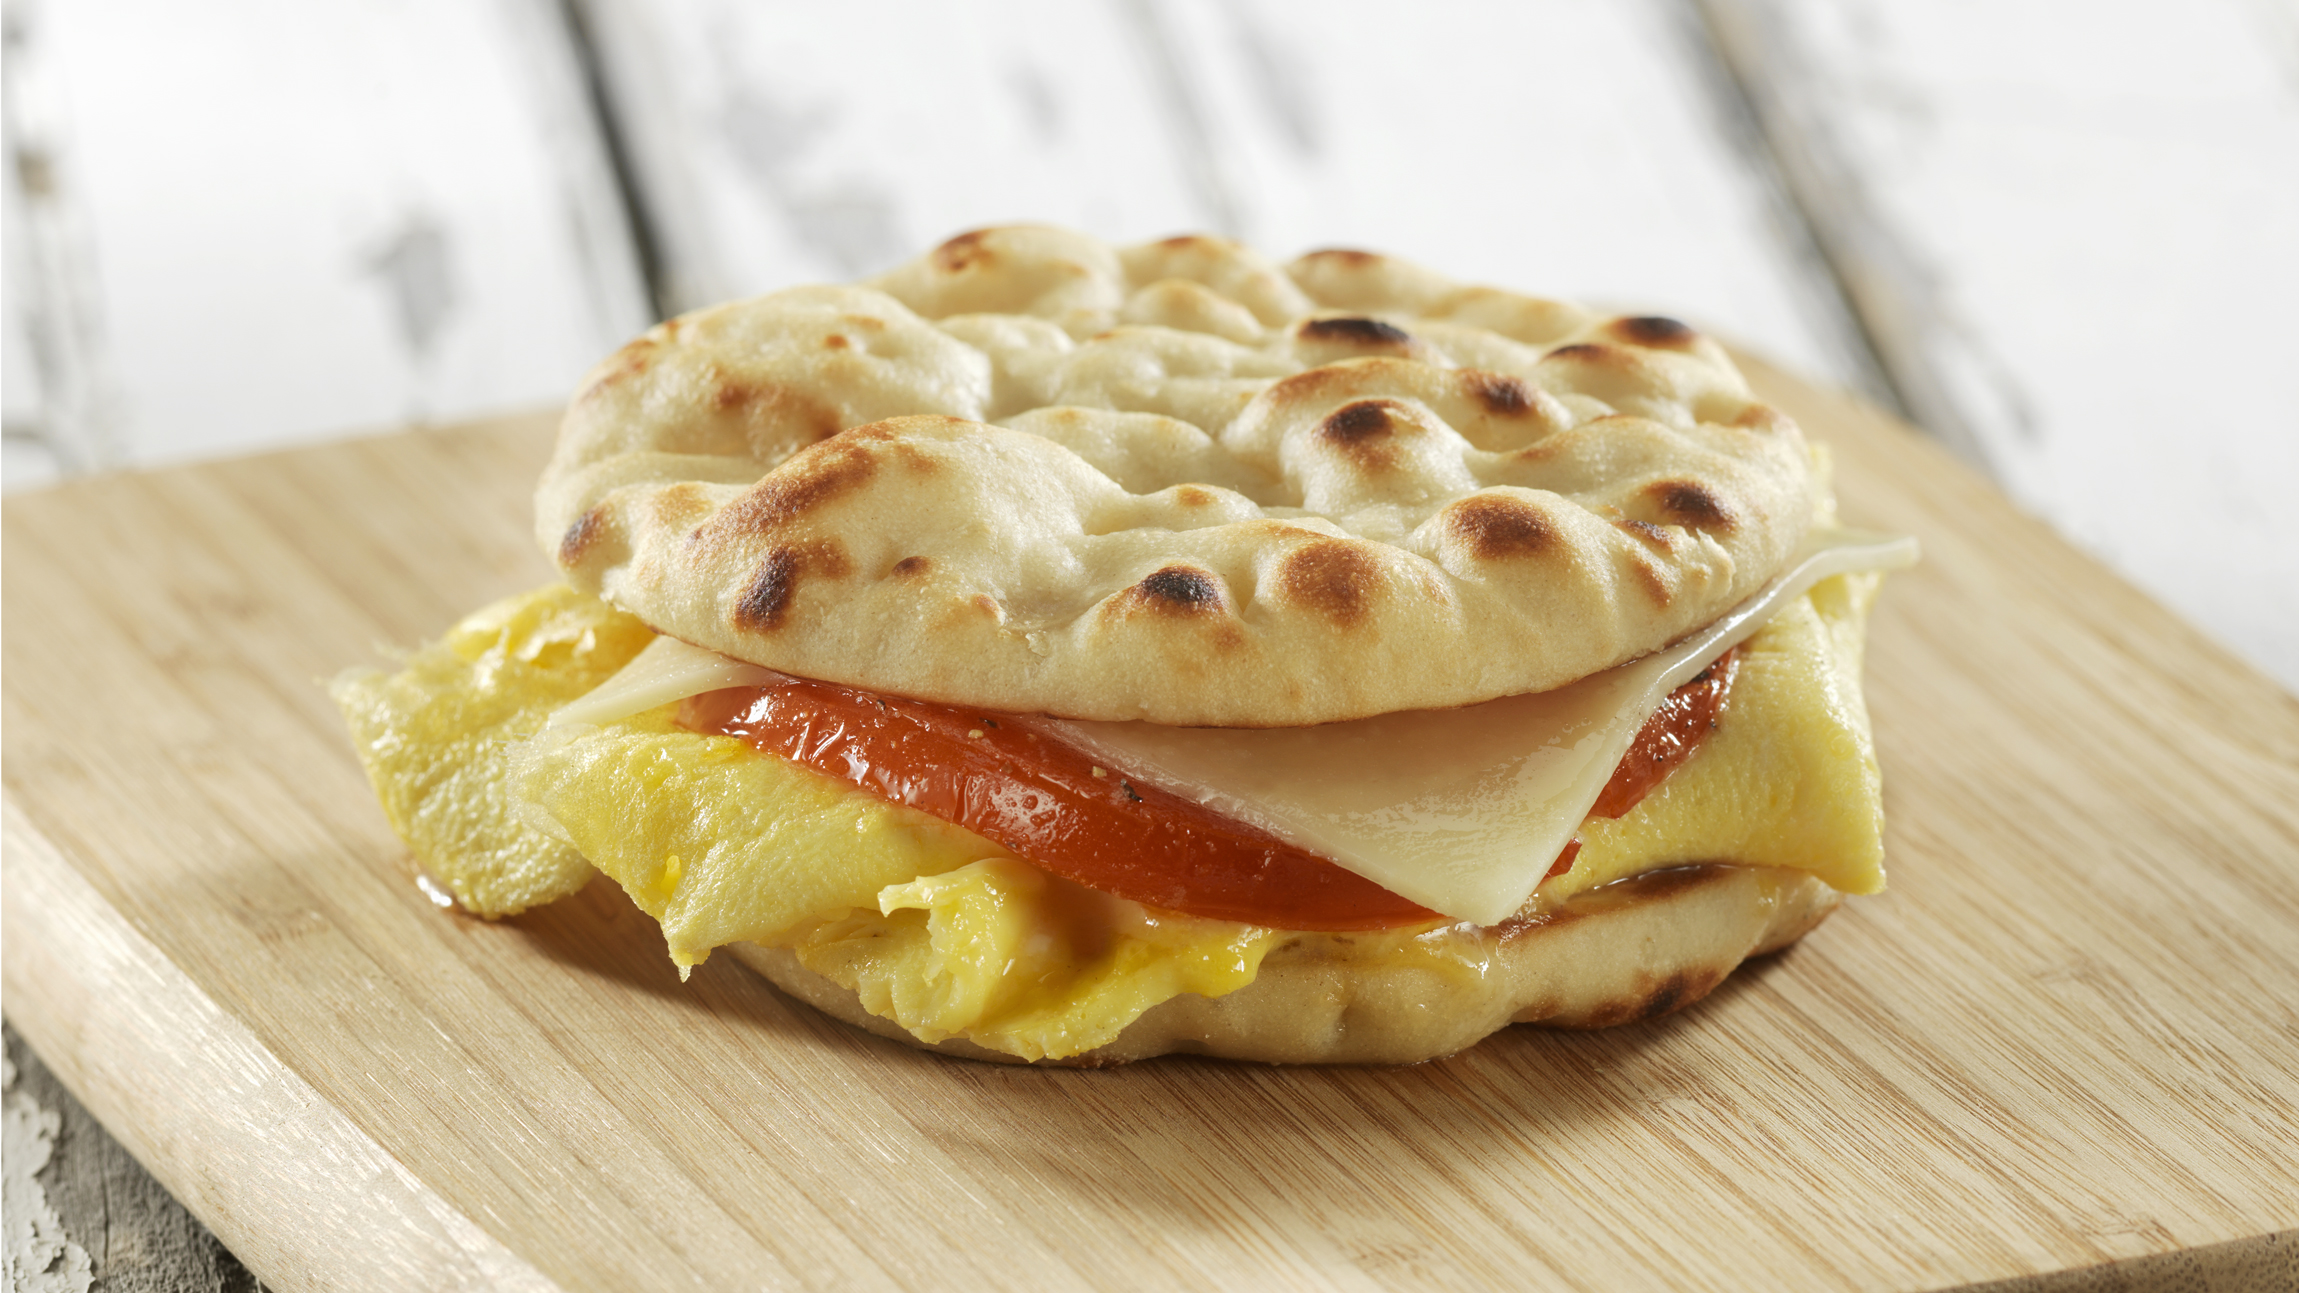 An easy and quick egg, cheese and tomato breakfast sandwich made with Stonefire Original Naan Rounds